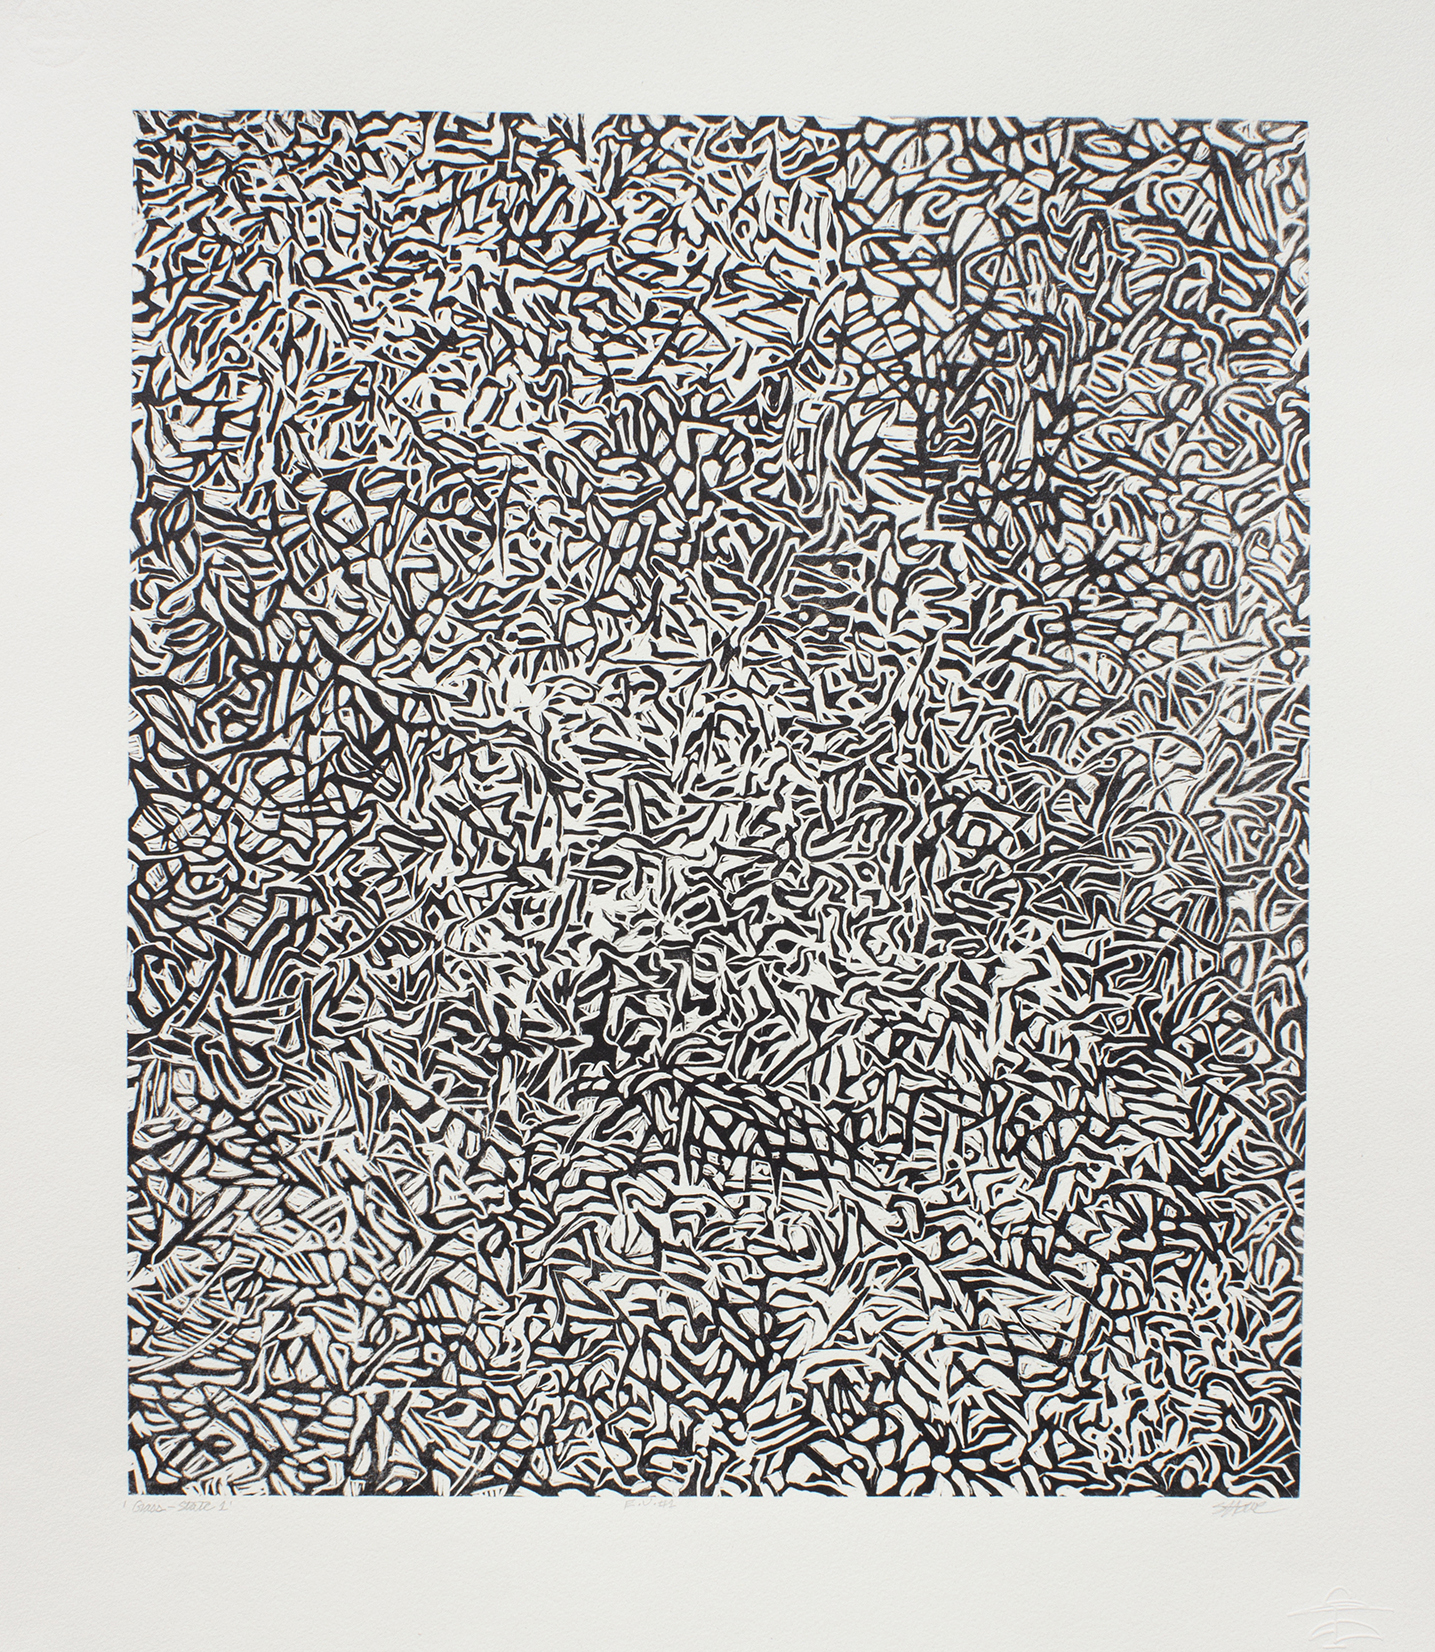 Susan Leone Howe, Grass State no.1, woodcut, 20.5 x 17 in, 2015